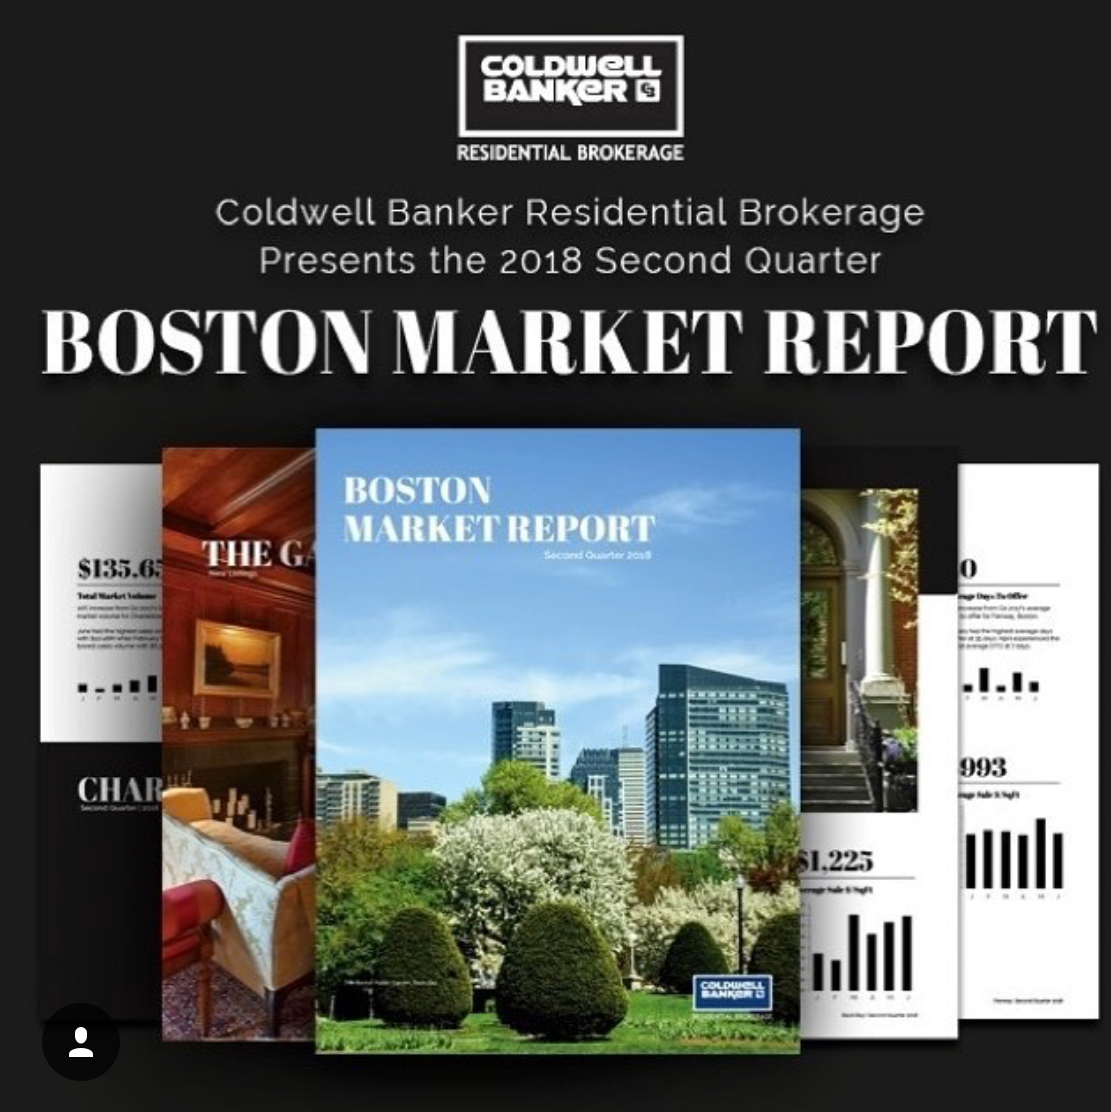 Boston Market Report Q2 2018